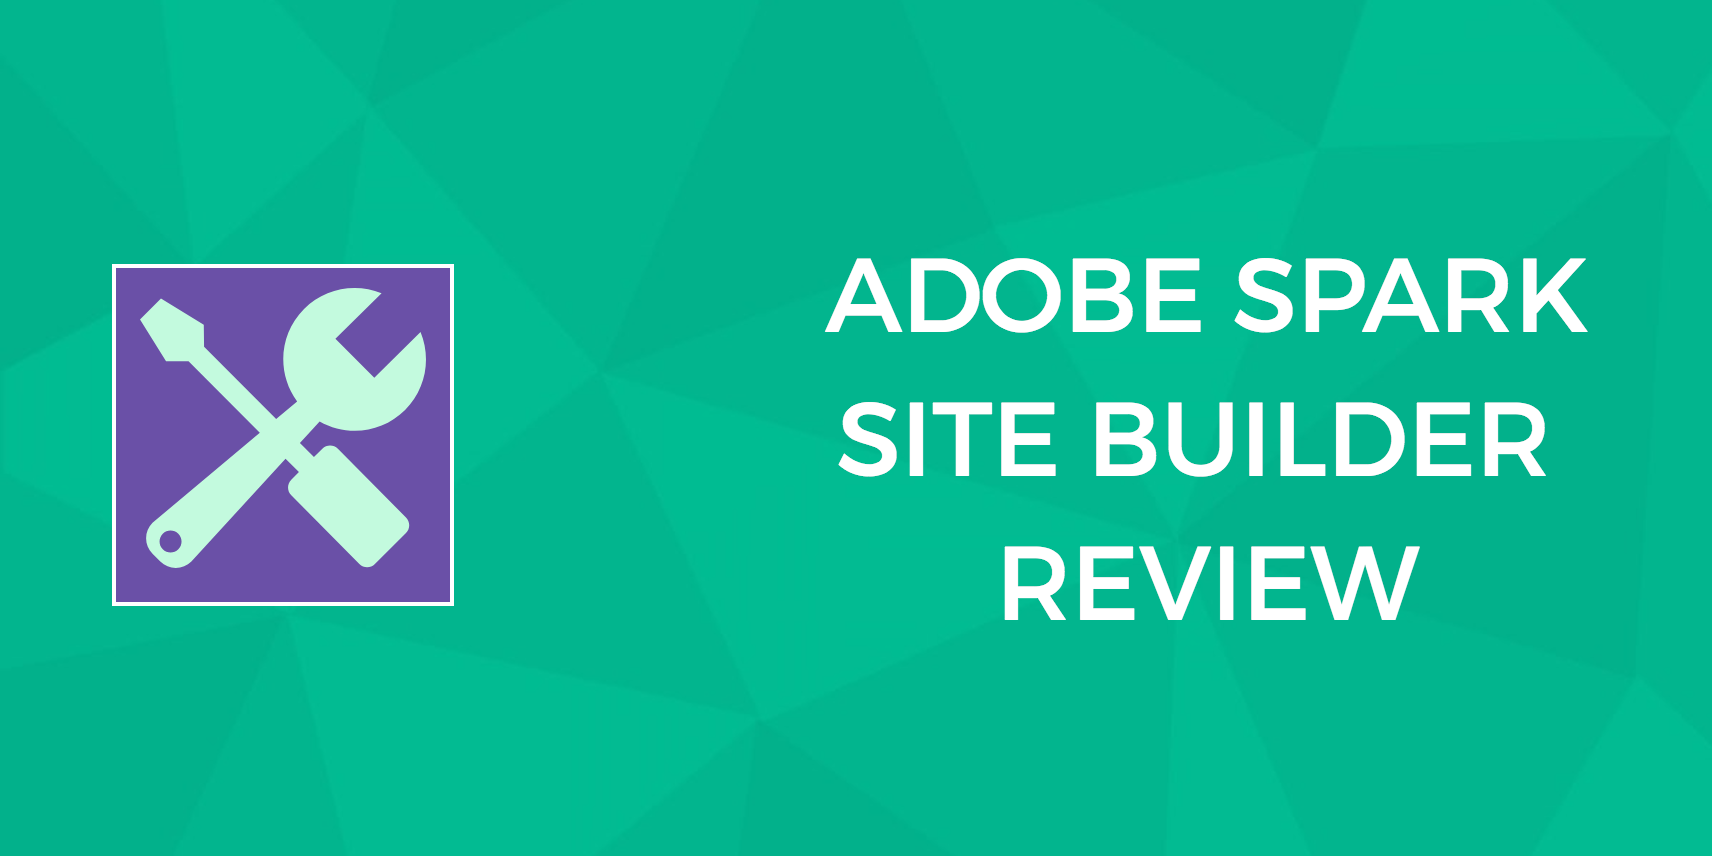 Adobe Spark Review: Does This Site Builder Live up to the